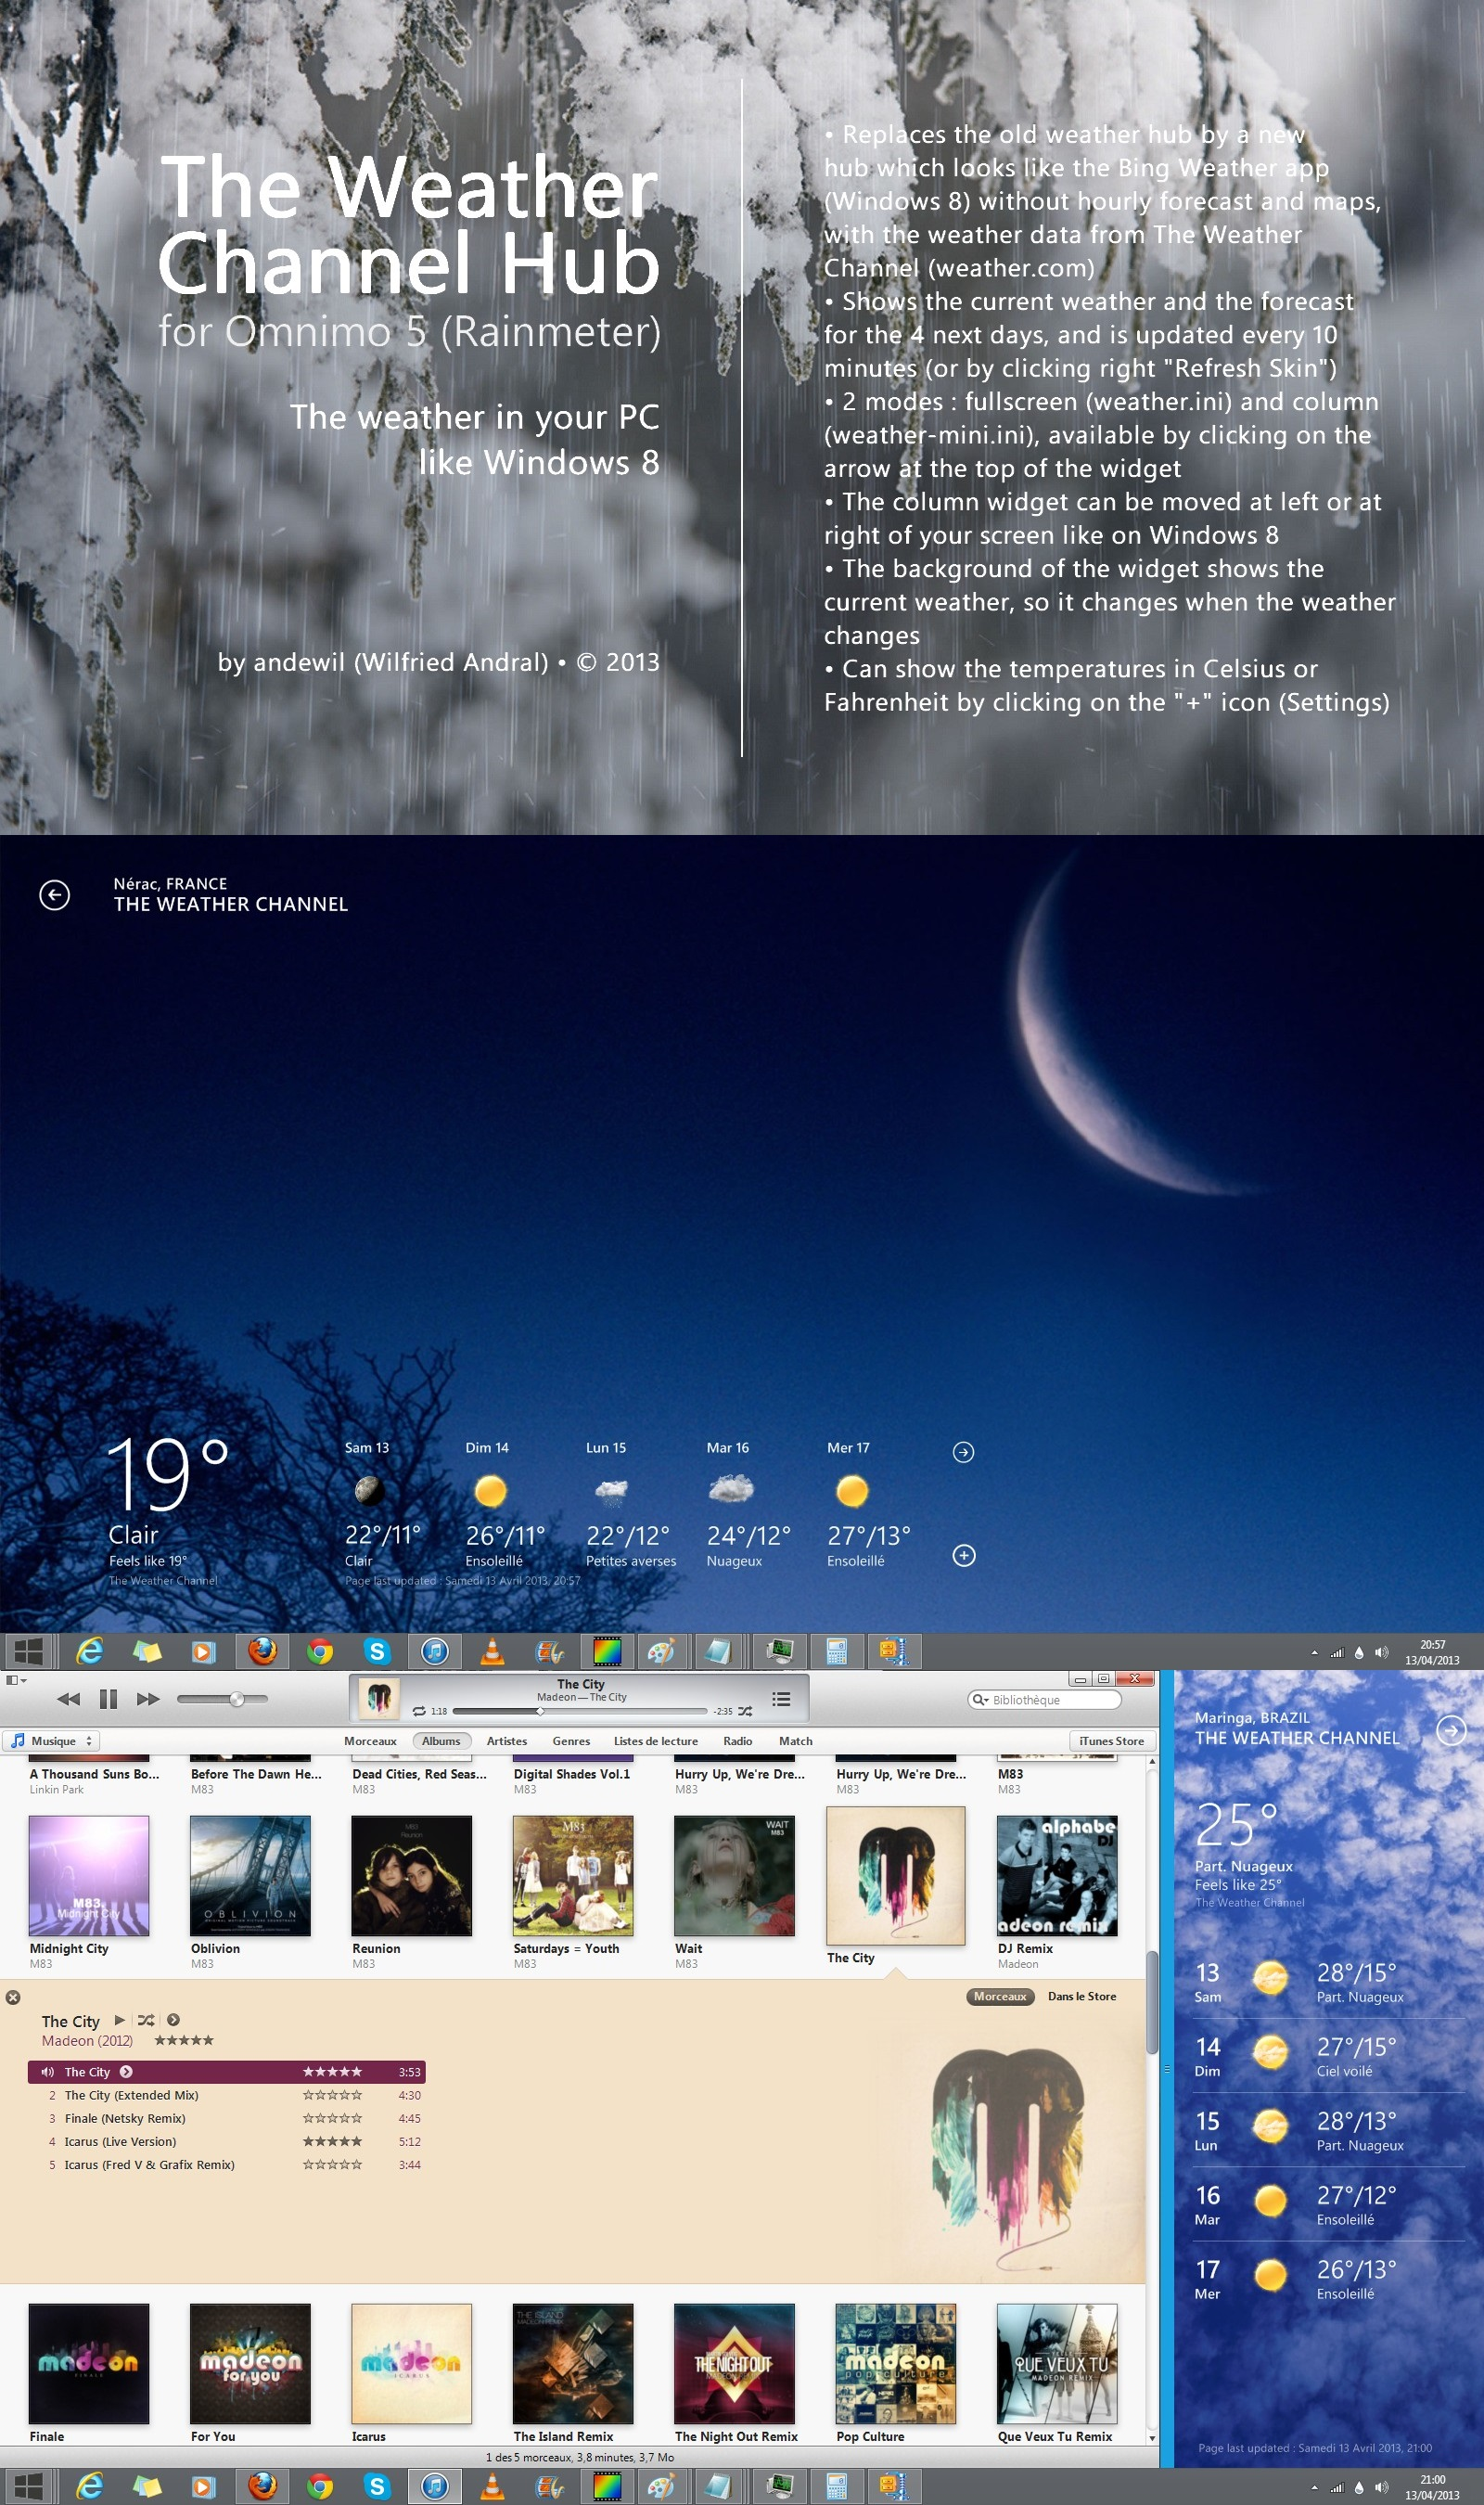 the weather channel hub for omnimo 5  rainmeter  by